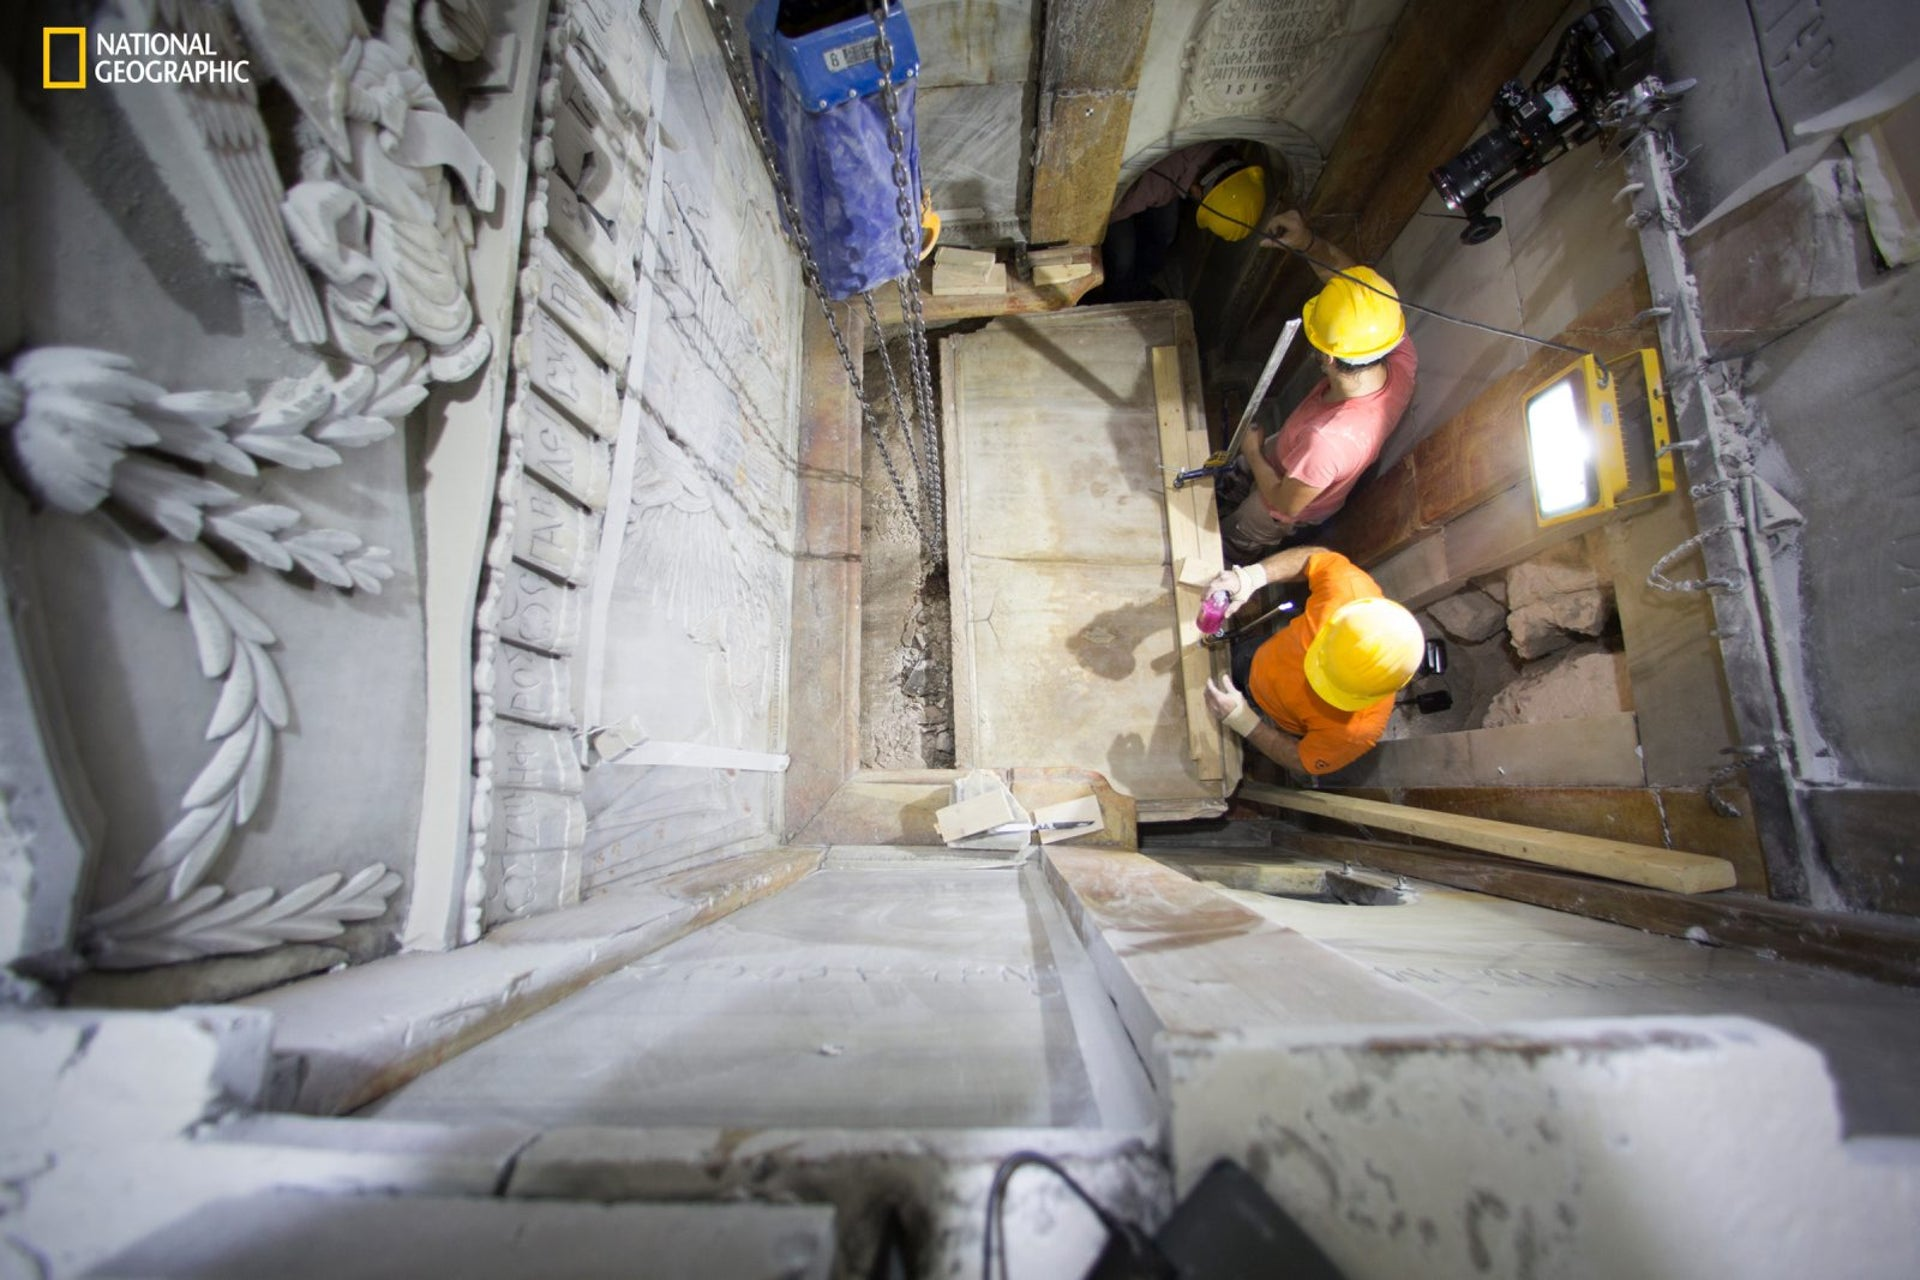 Workers replace the marble slab covering the Tomb of Jesus, where his body is believed to have been laid: the stone had been removed for 3 days to allow the team to do restoration works.